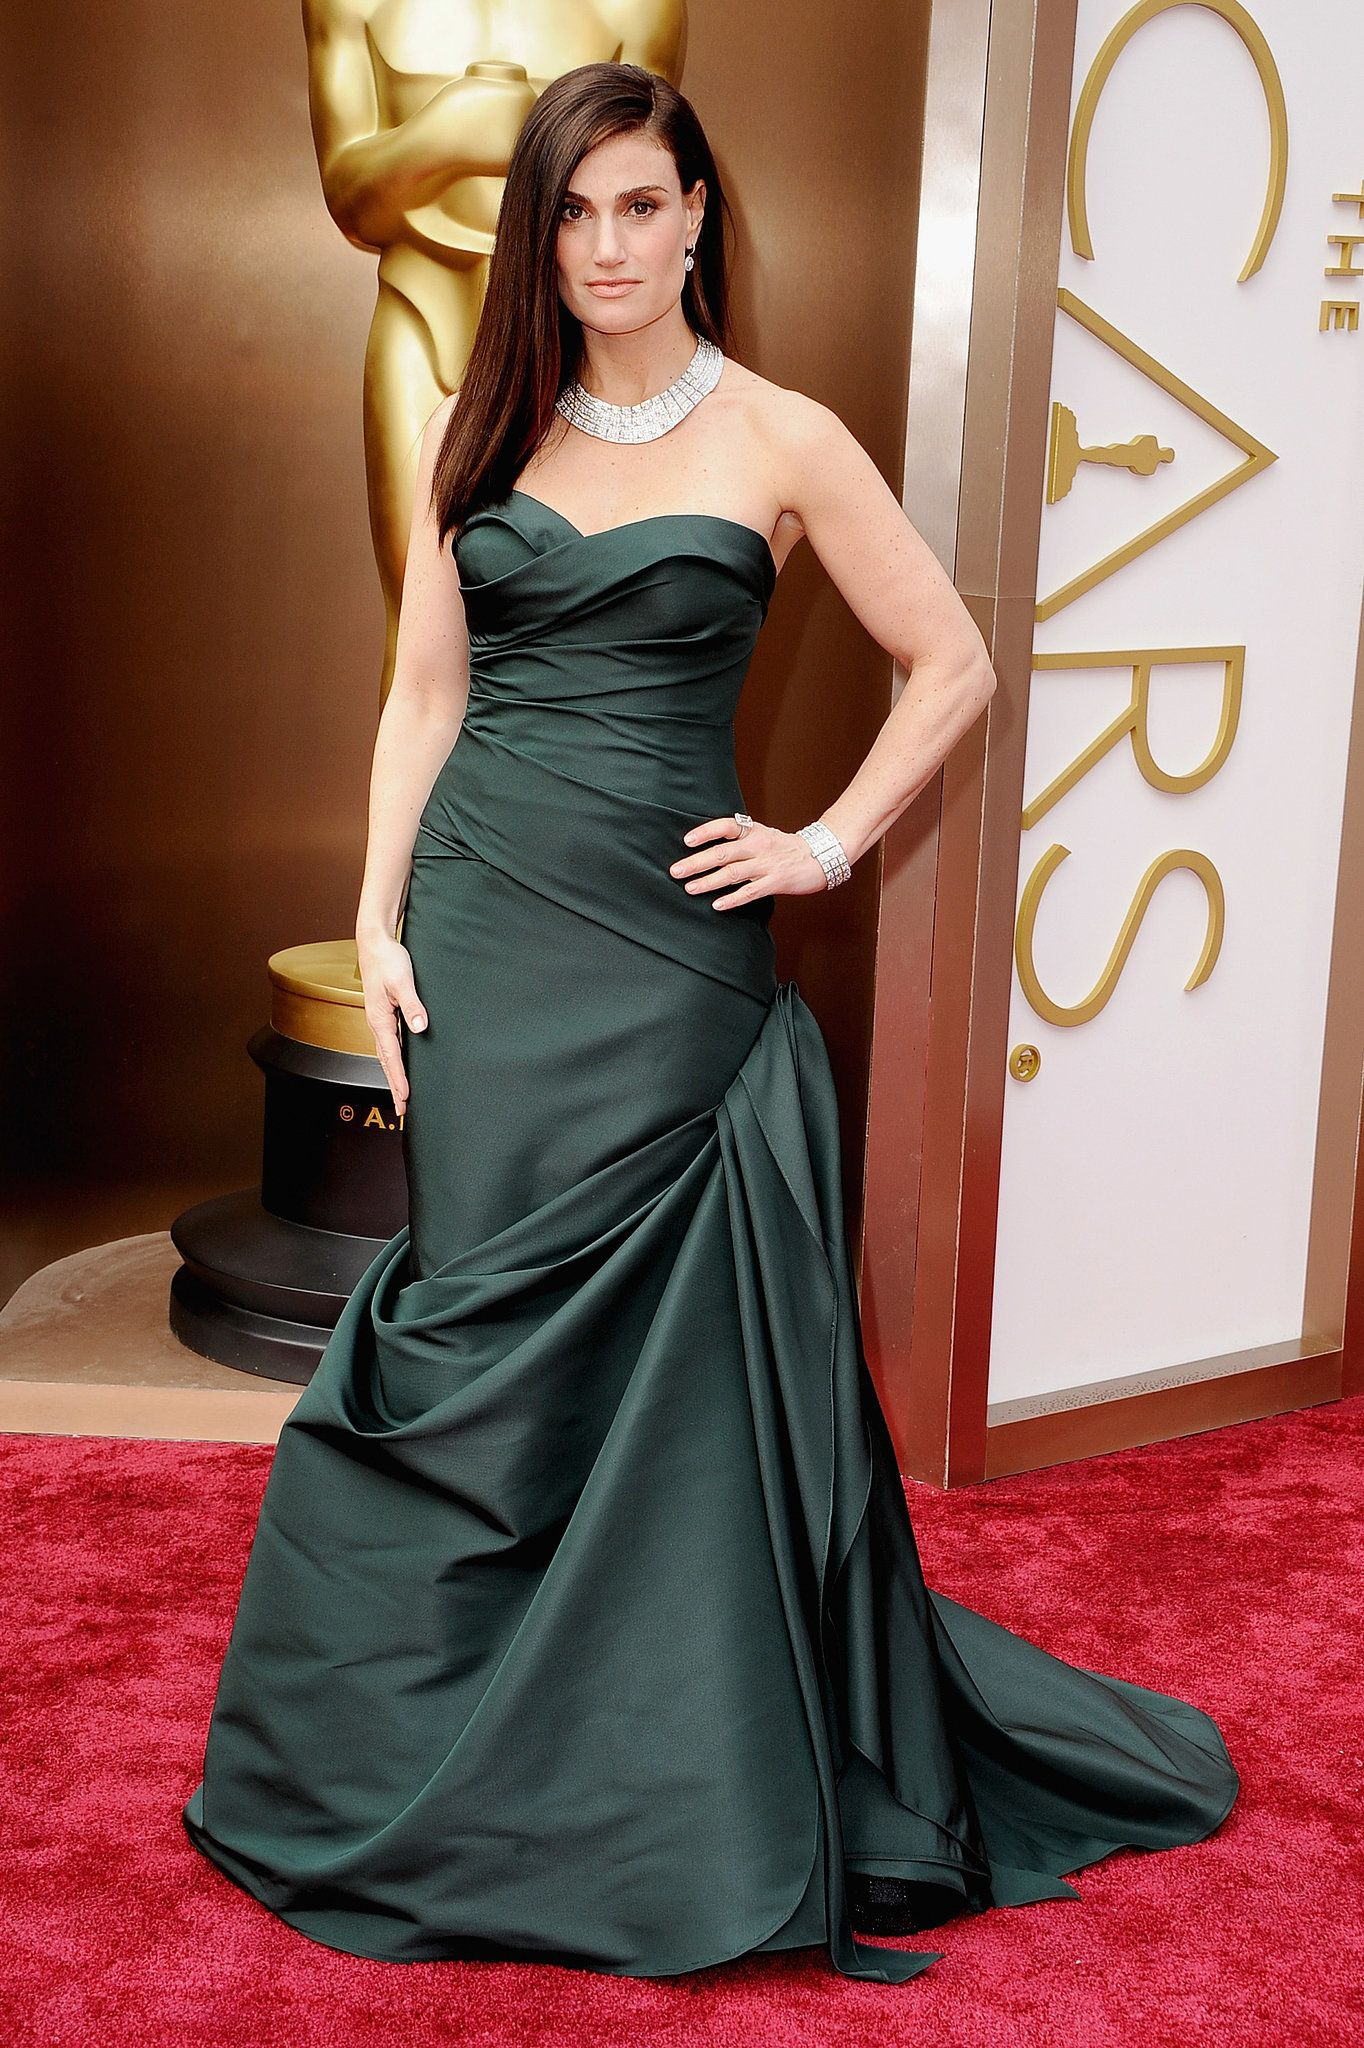 Idina Menzel in an emerald-green Vera Wang mermaid gown and Forevermark diamonds. #Oscars #redcarpet